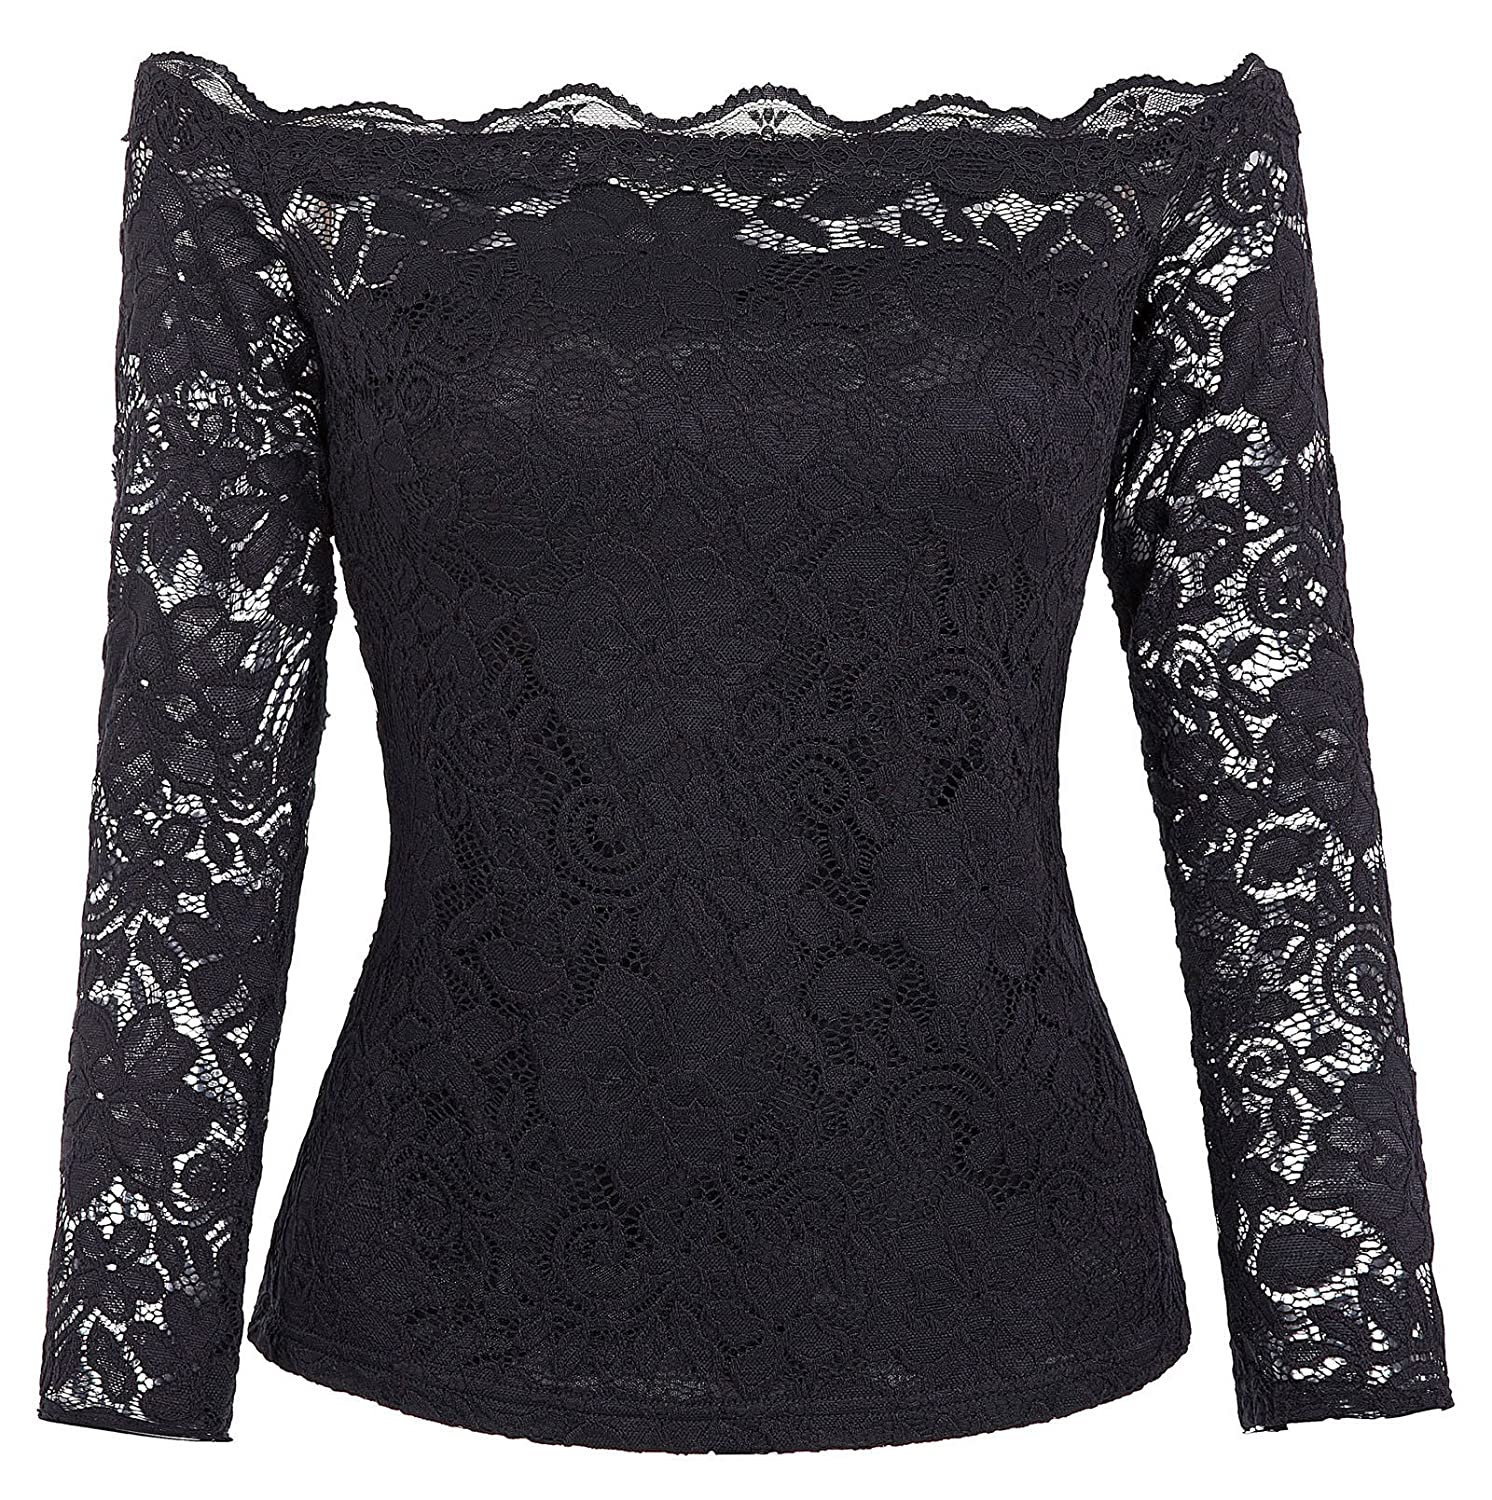 9921fb3a770 Kate Kasin Women's Off Shoulder Lace Top Sexy Floral Lace Blouse T-Shirt  Long Sleeve